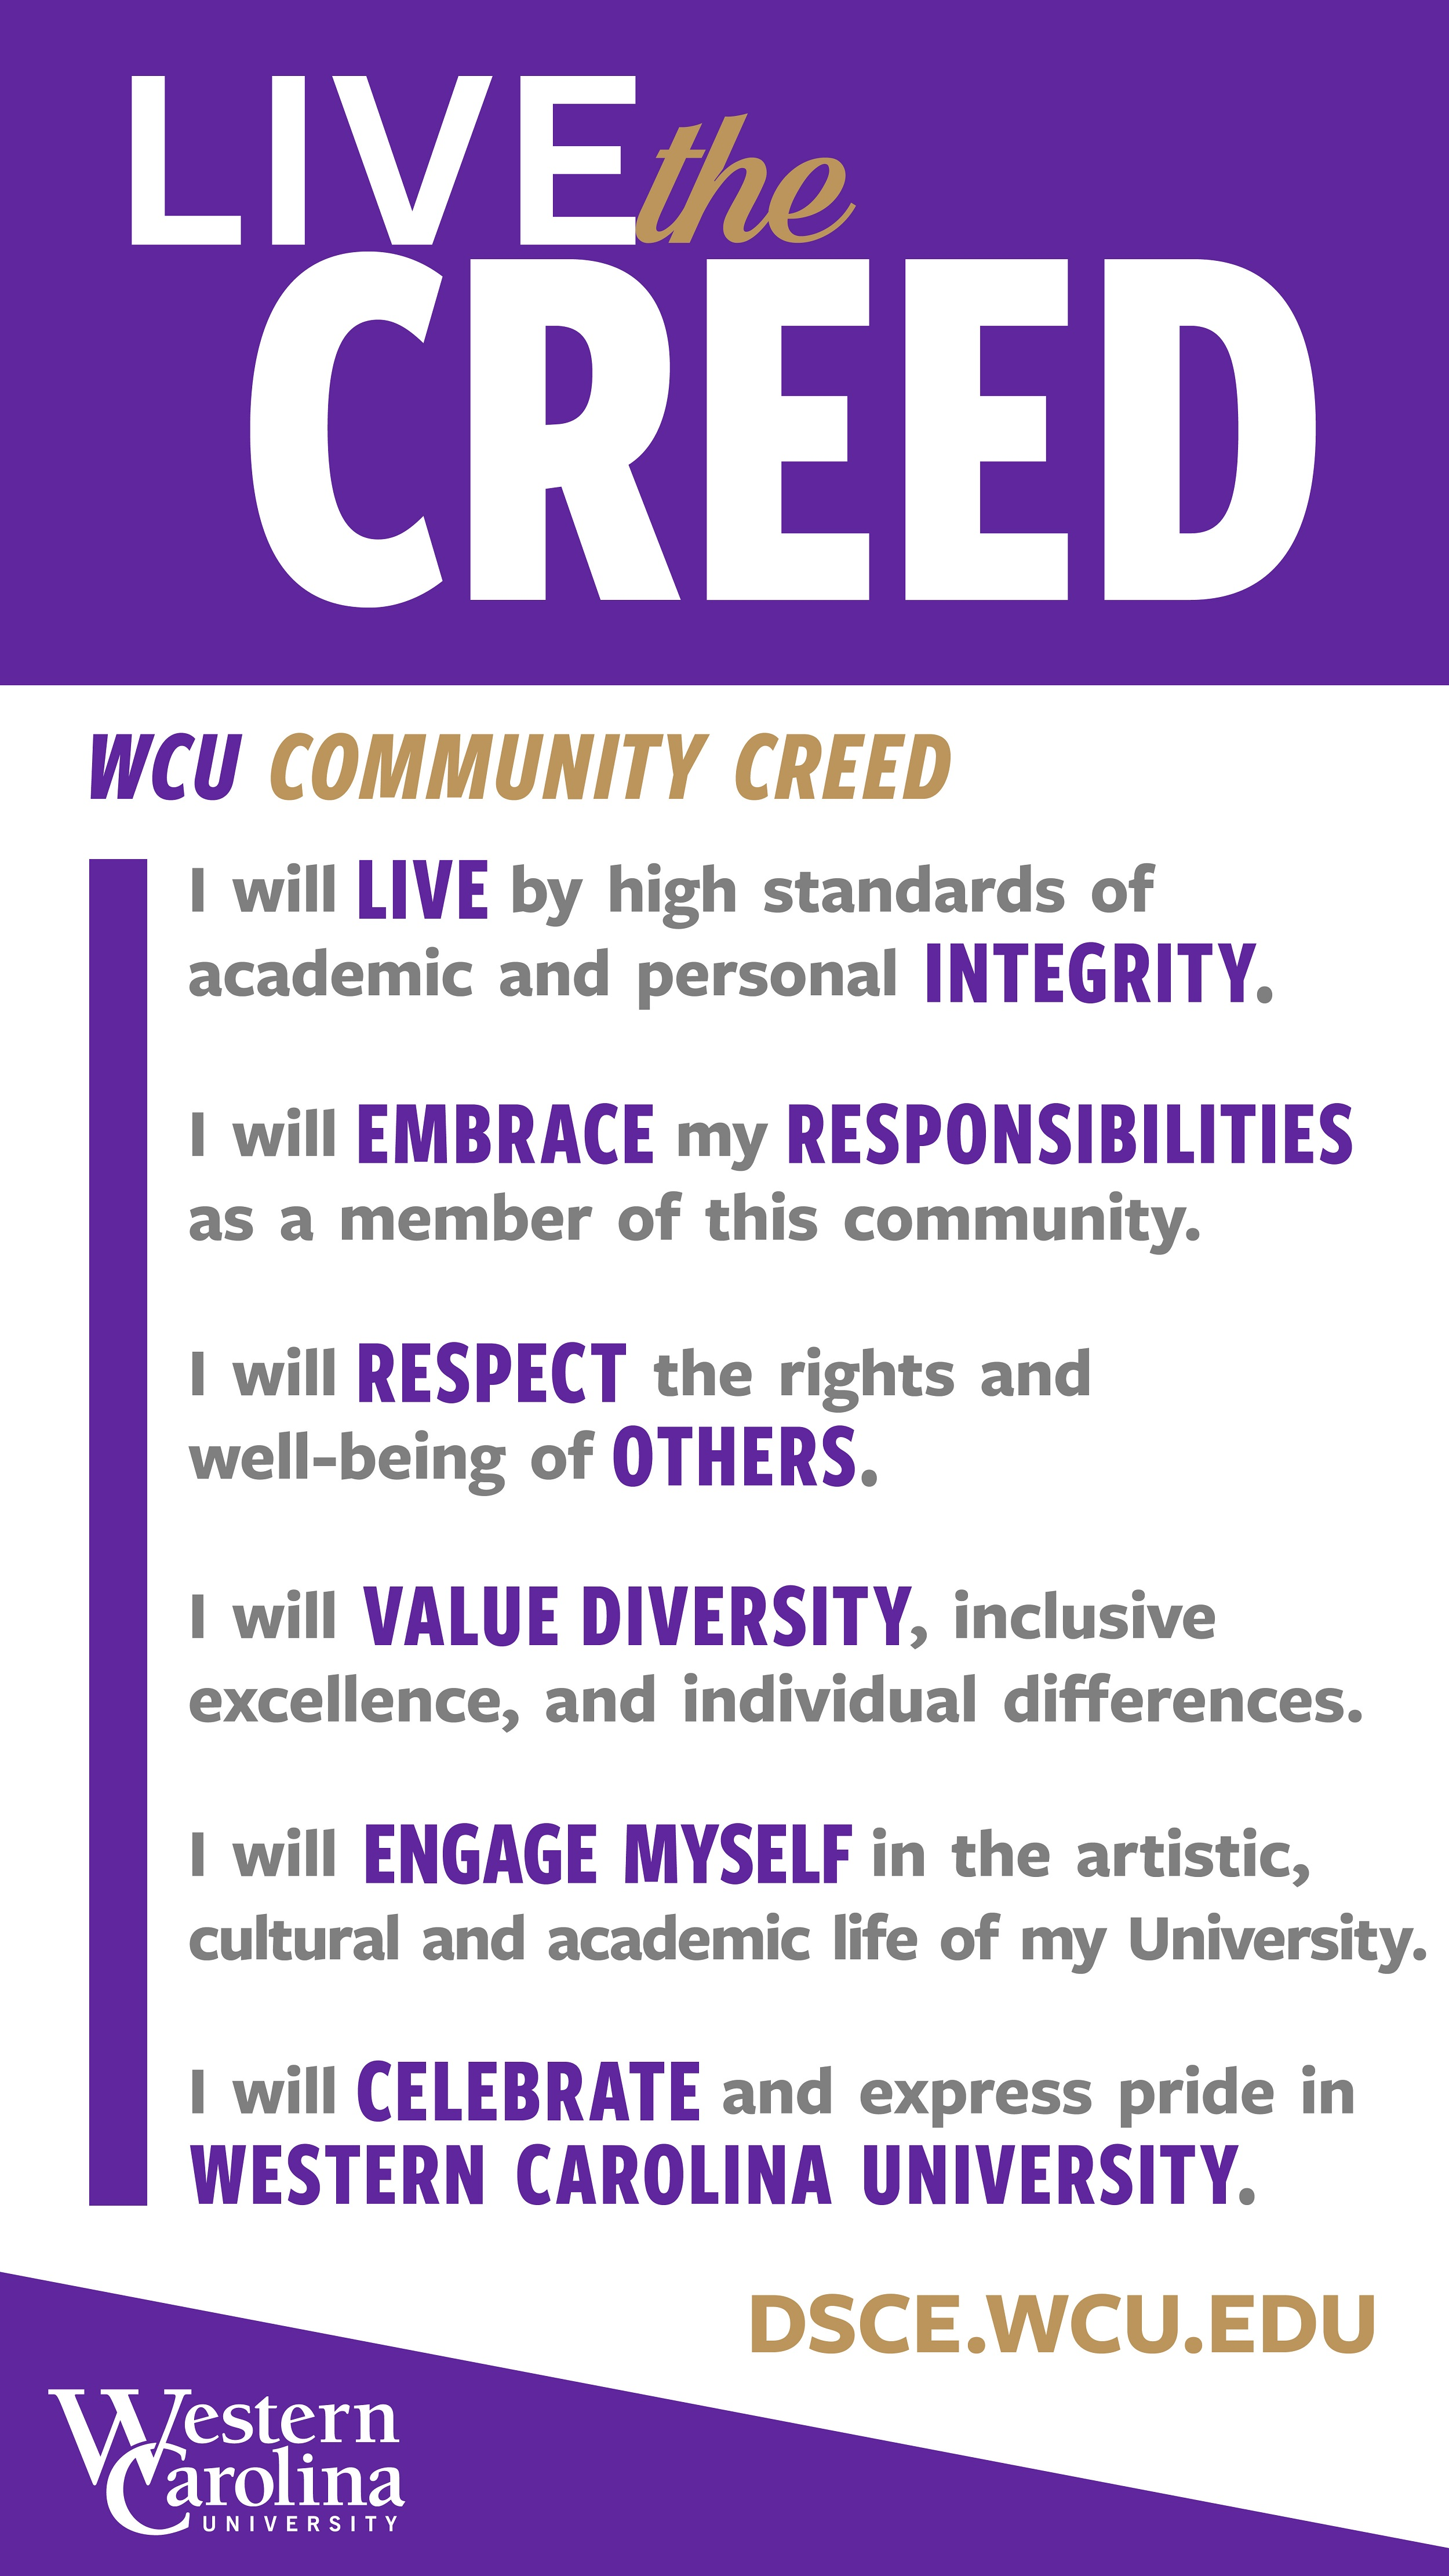 Community Creed